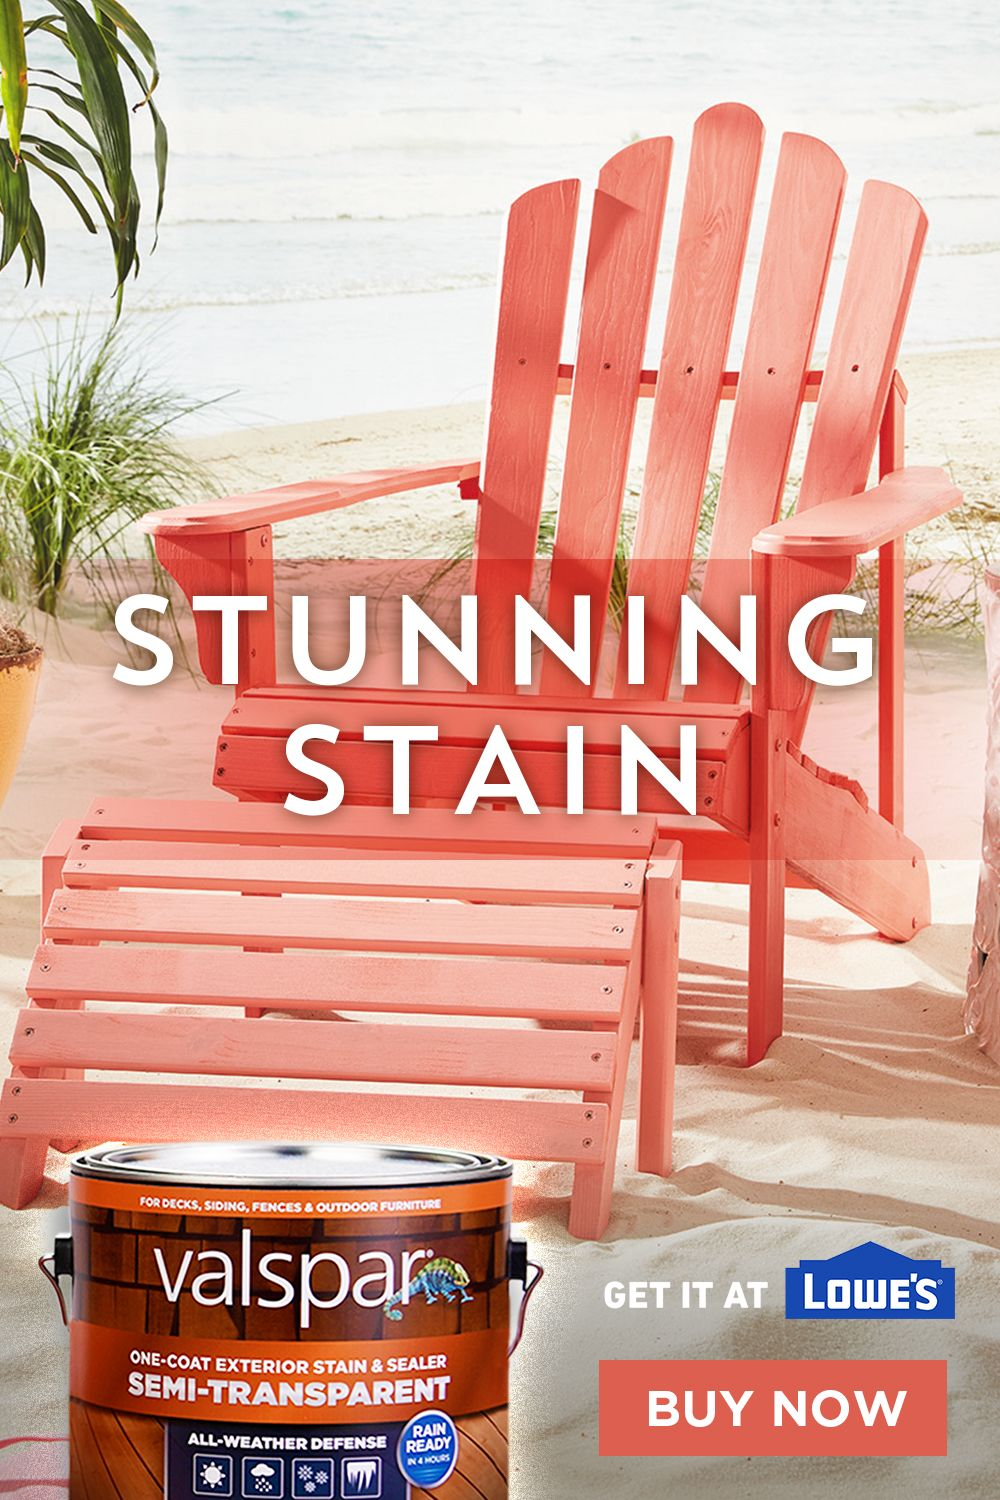 Applying Color To Outdoor Furniture Stain Is Easy With Semi Transparent Valspar Stain It Provides All Outdoor Deck Furniture Backyard Furniture Staining Wood